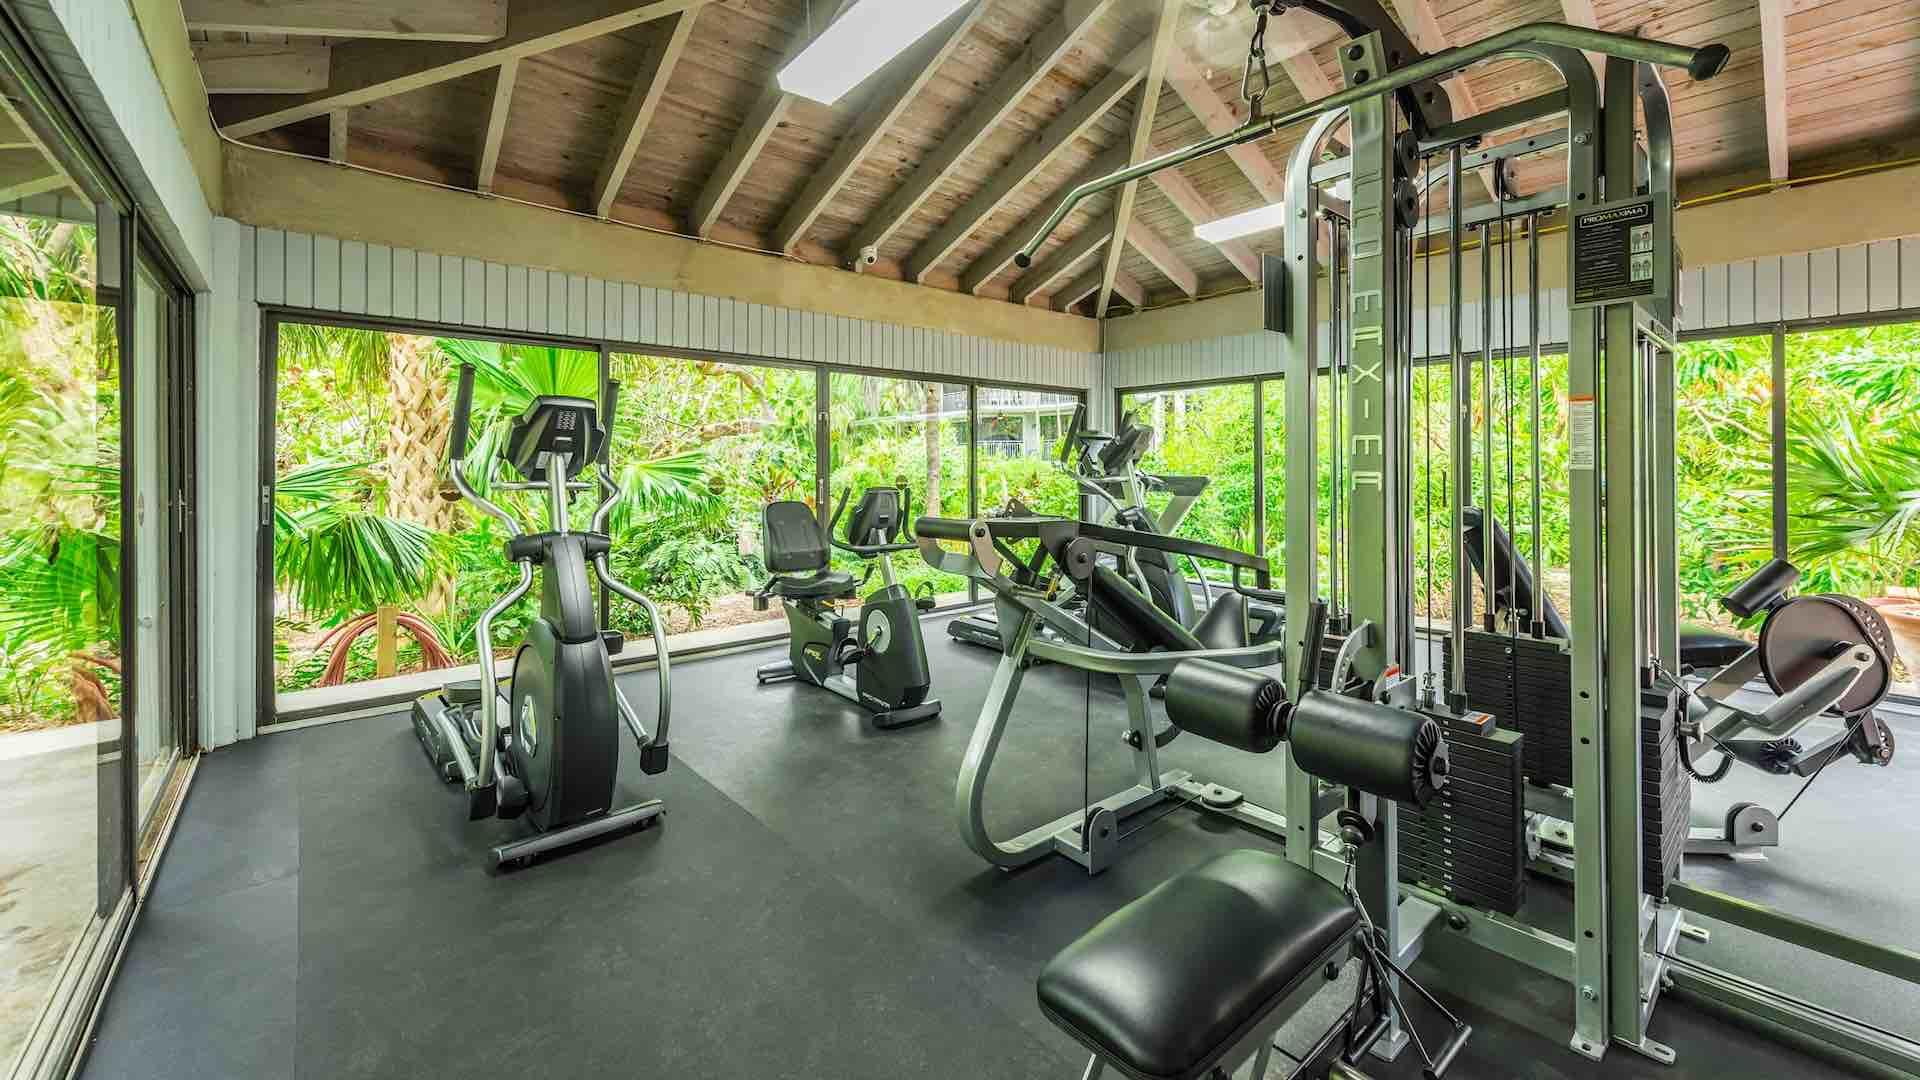 Guests can enjoy the newly constructed Fitness Center...